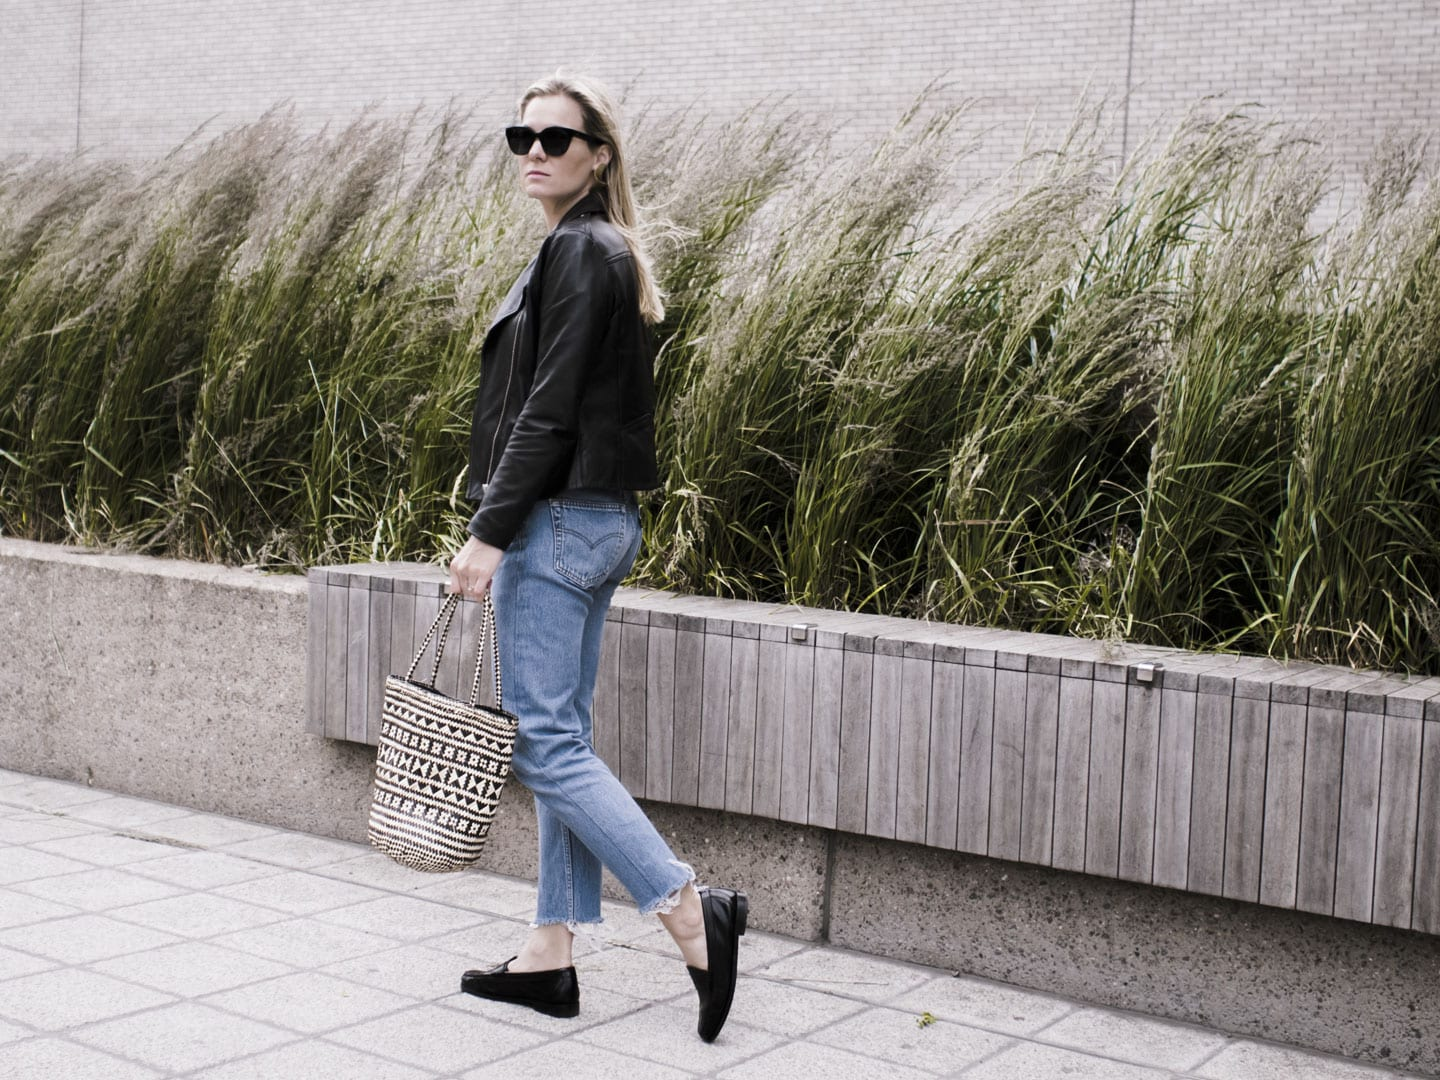 Vikki wears Levi 501s, Bass Weejun black loafers, straw bag, Sandro biker jacket and Ace & Tate black sunglasses